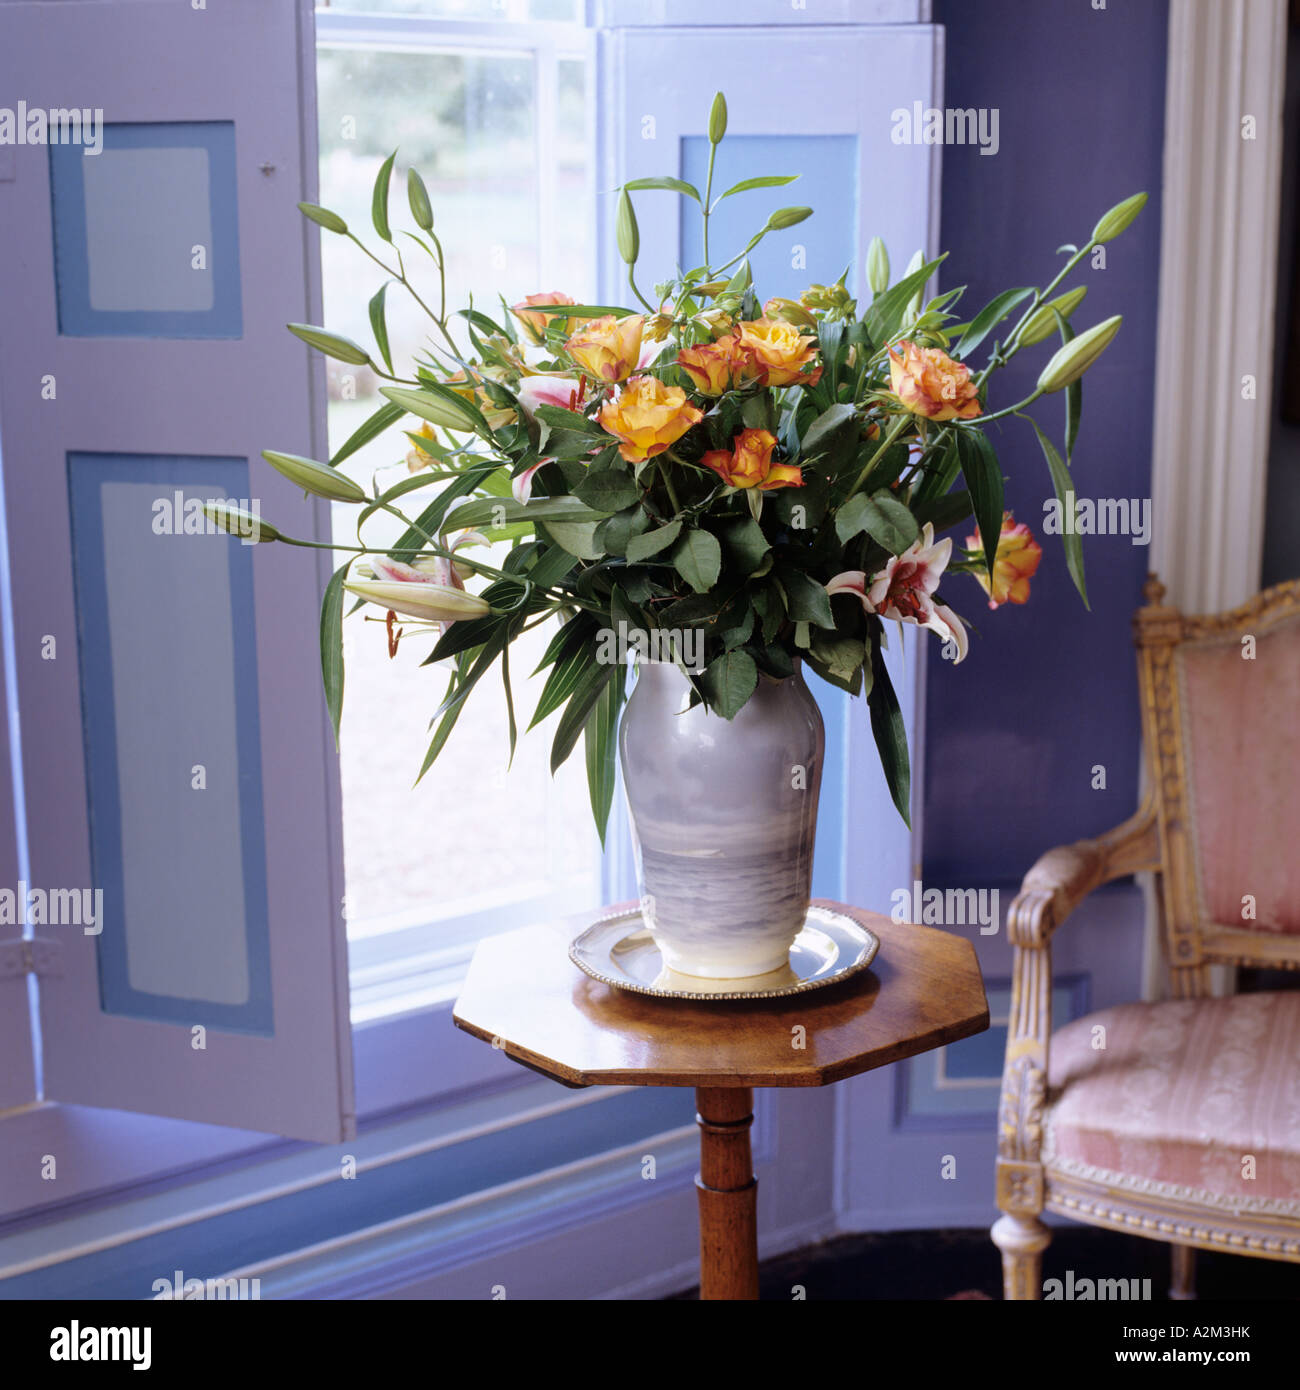 Flower Vase High Resolution Stock Photography And Images Alamy